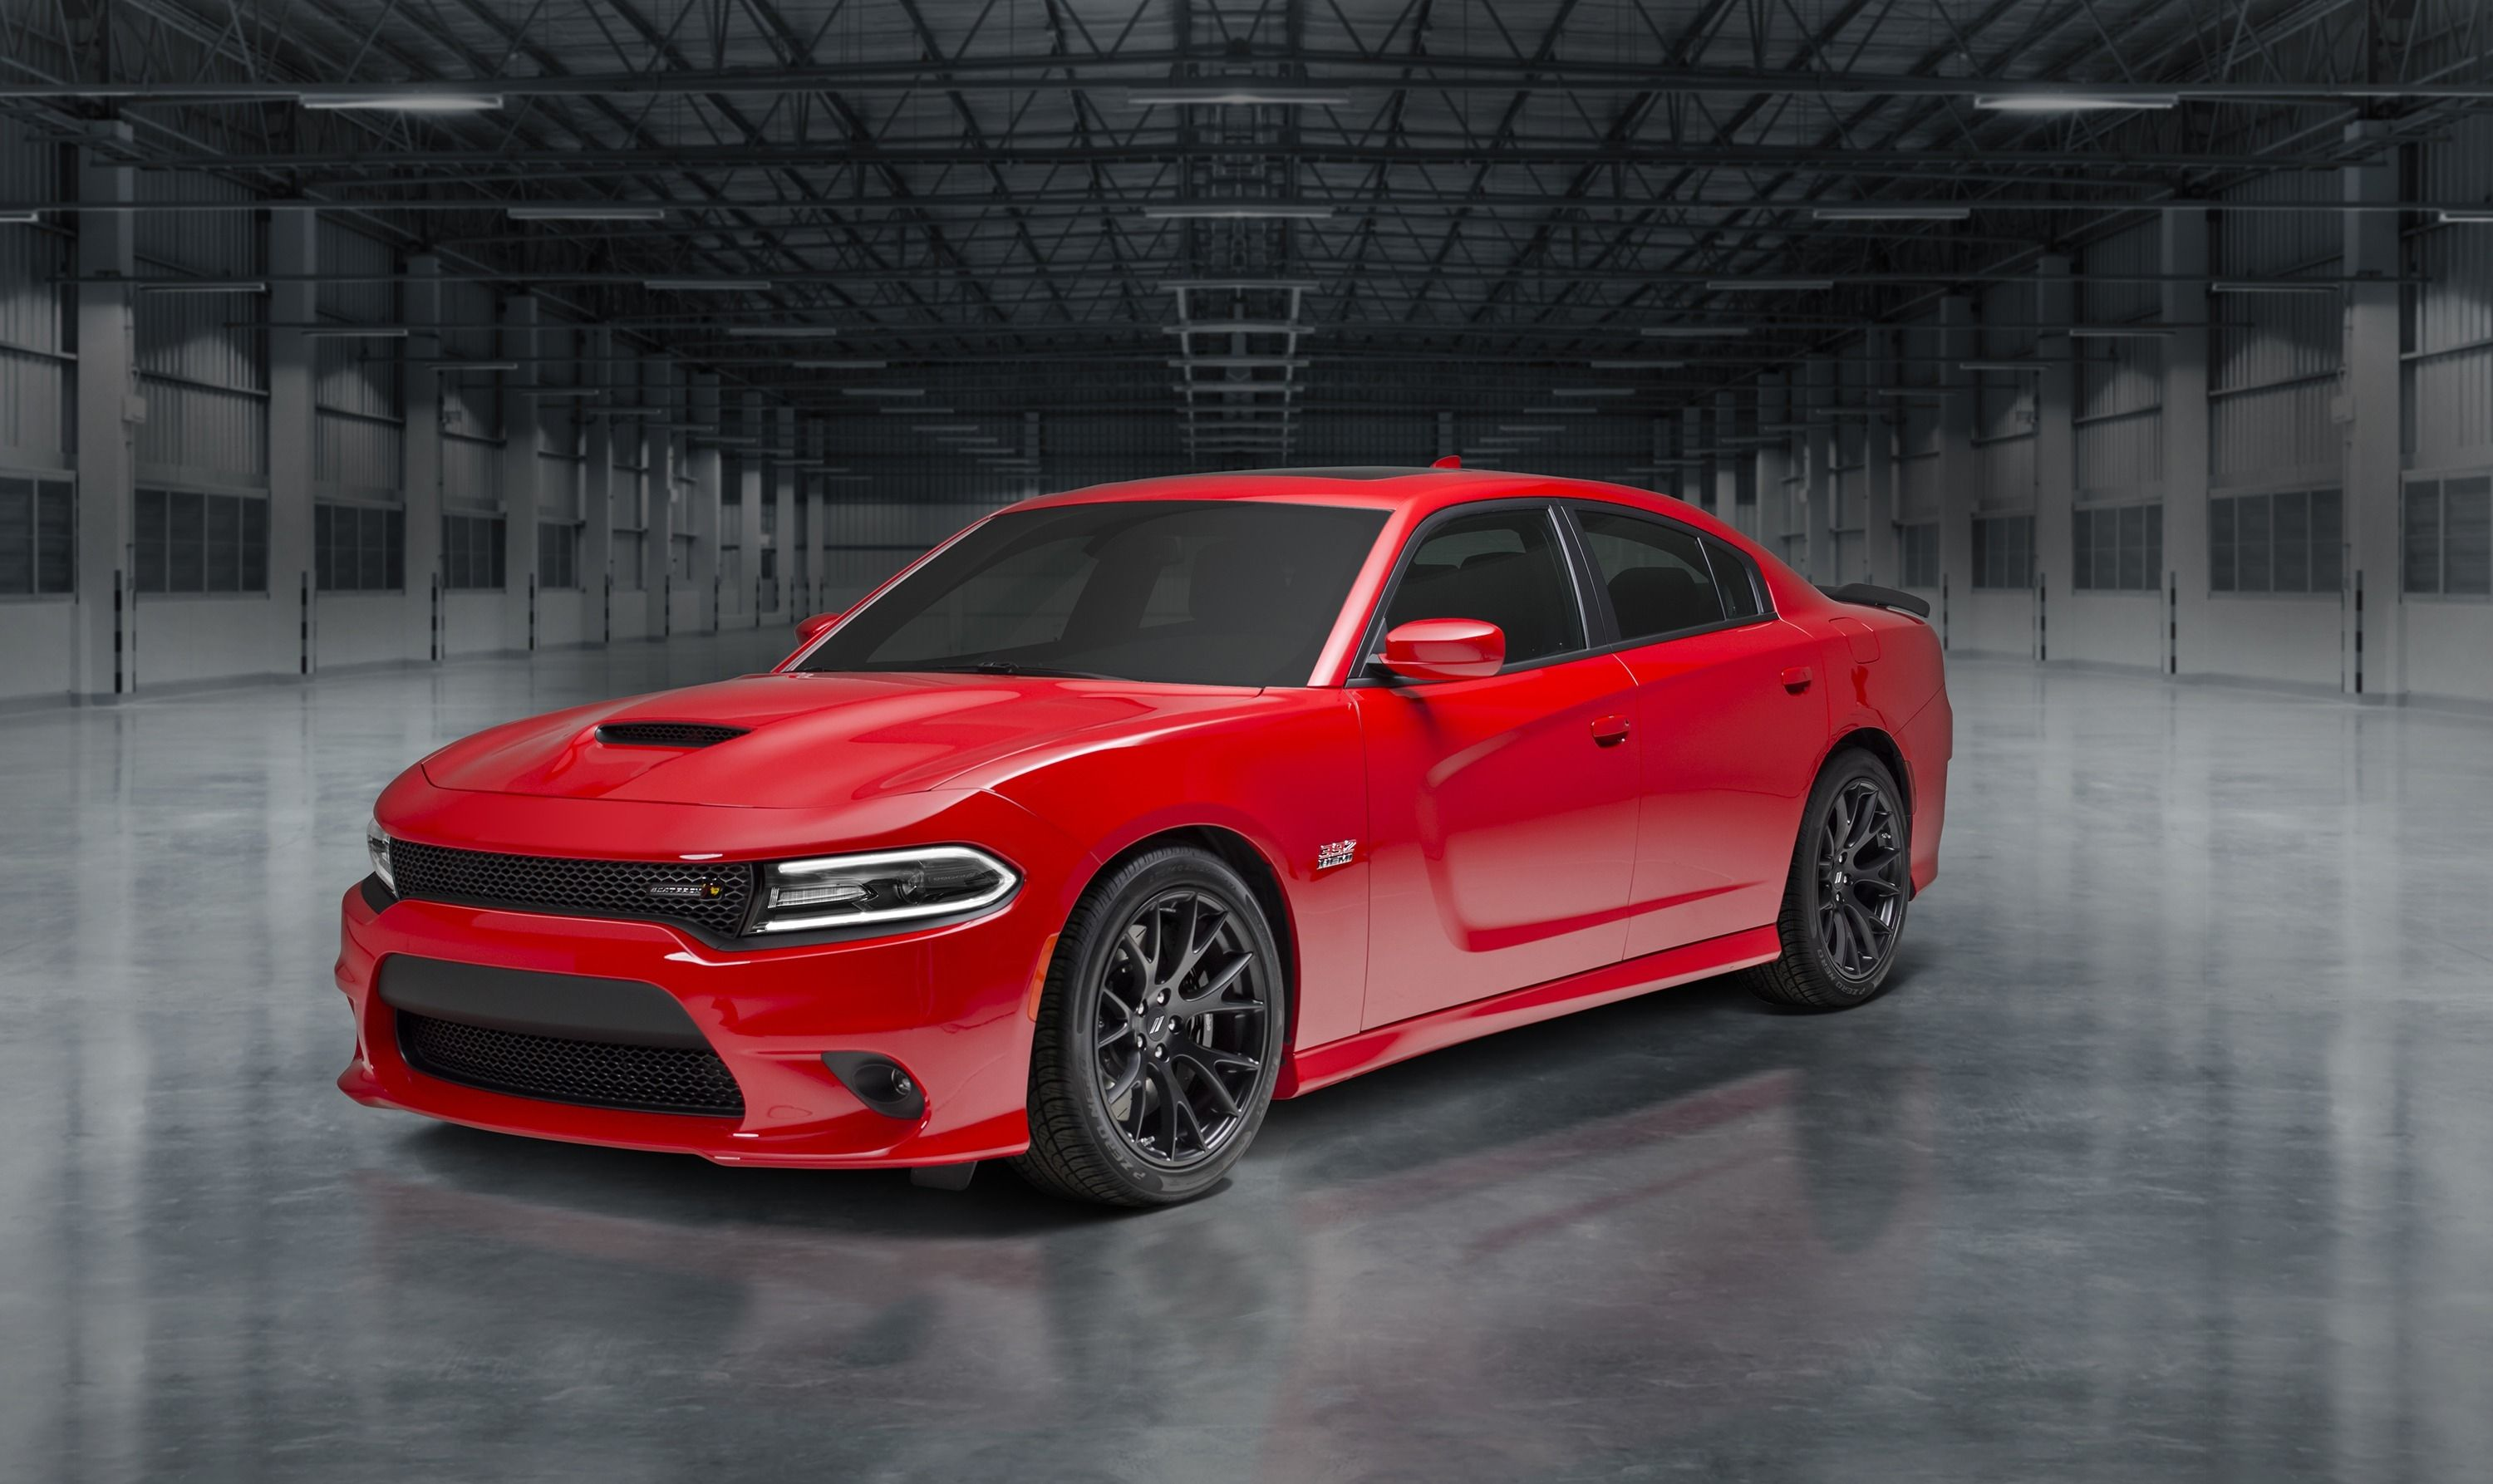 2019 Dodge Charger Hellcat Price Charger Srt Dodge Charger